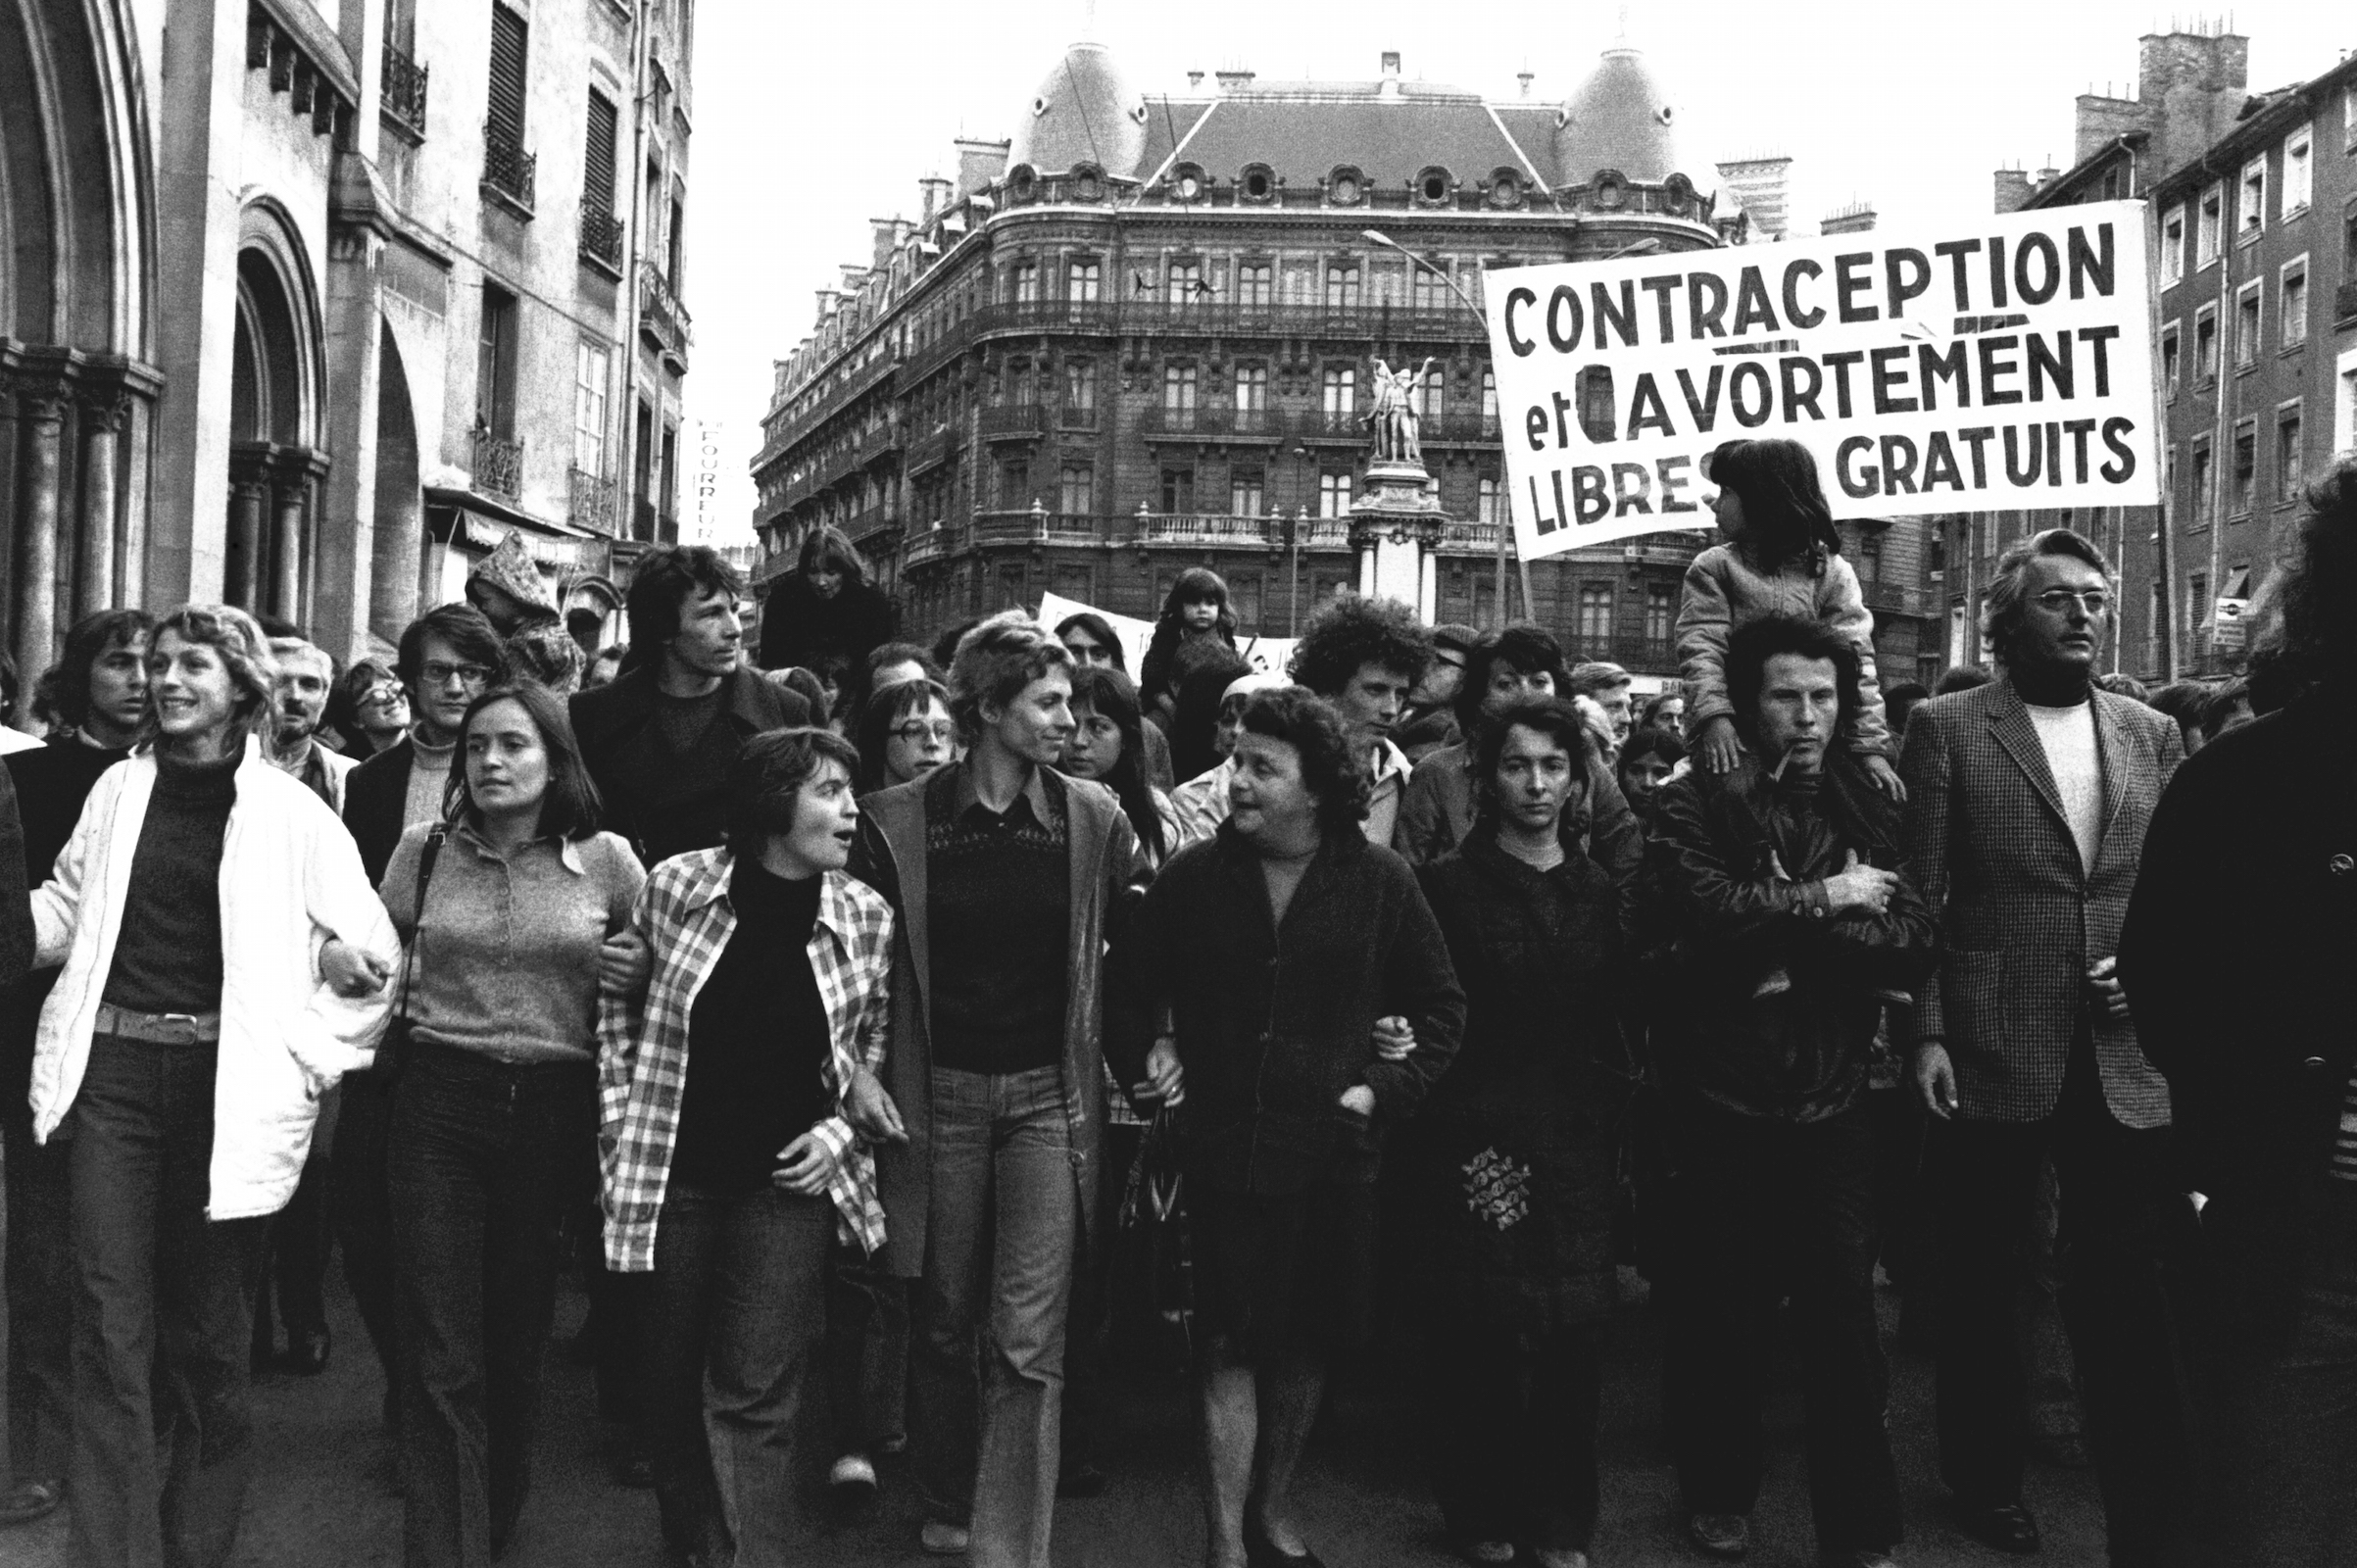 An abortion-rights protest in Grenoble, France, on May 11, 1973.